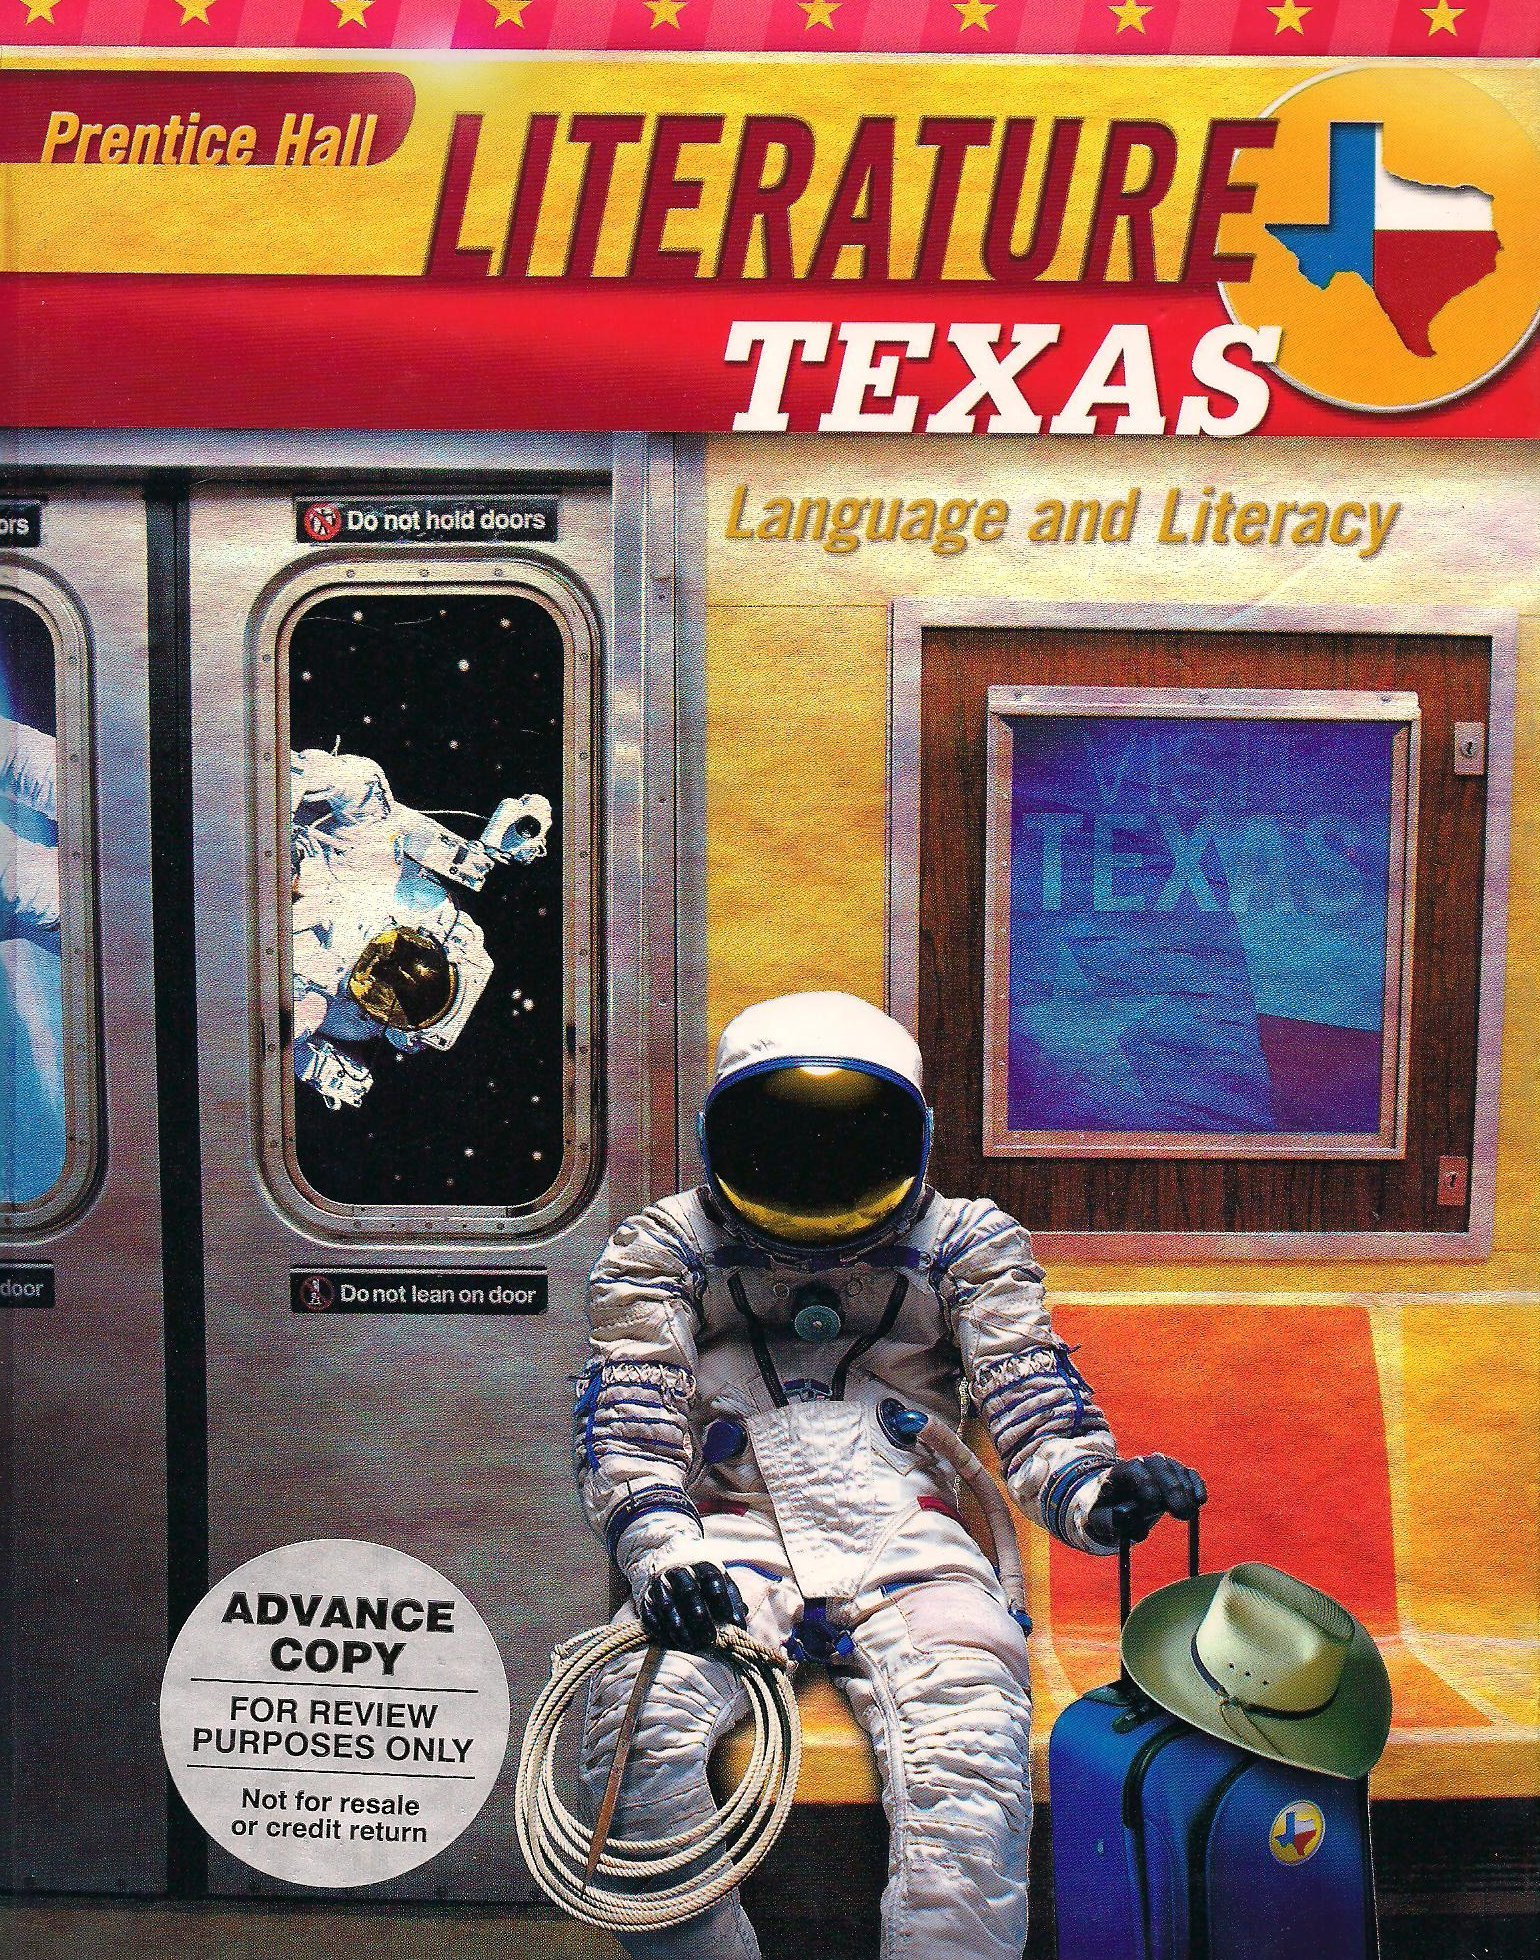 Prentice Hall Literature Texas Language And Literacy Grade